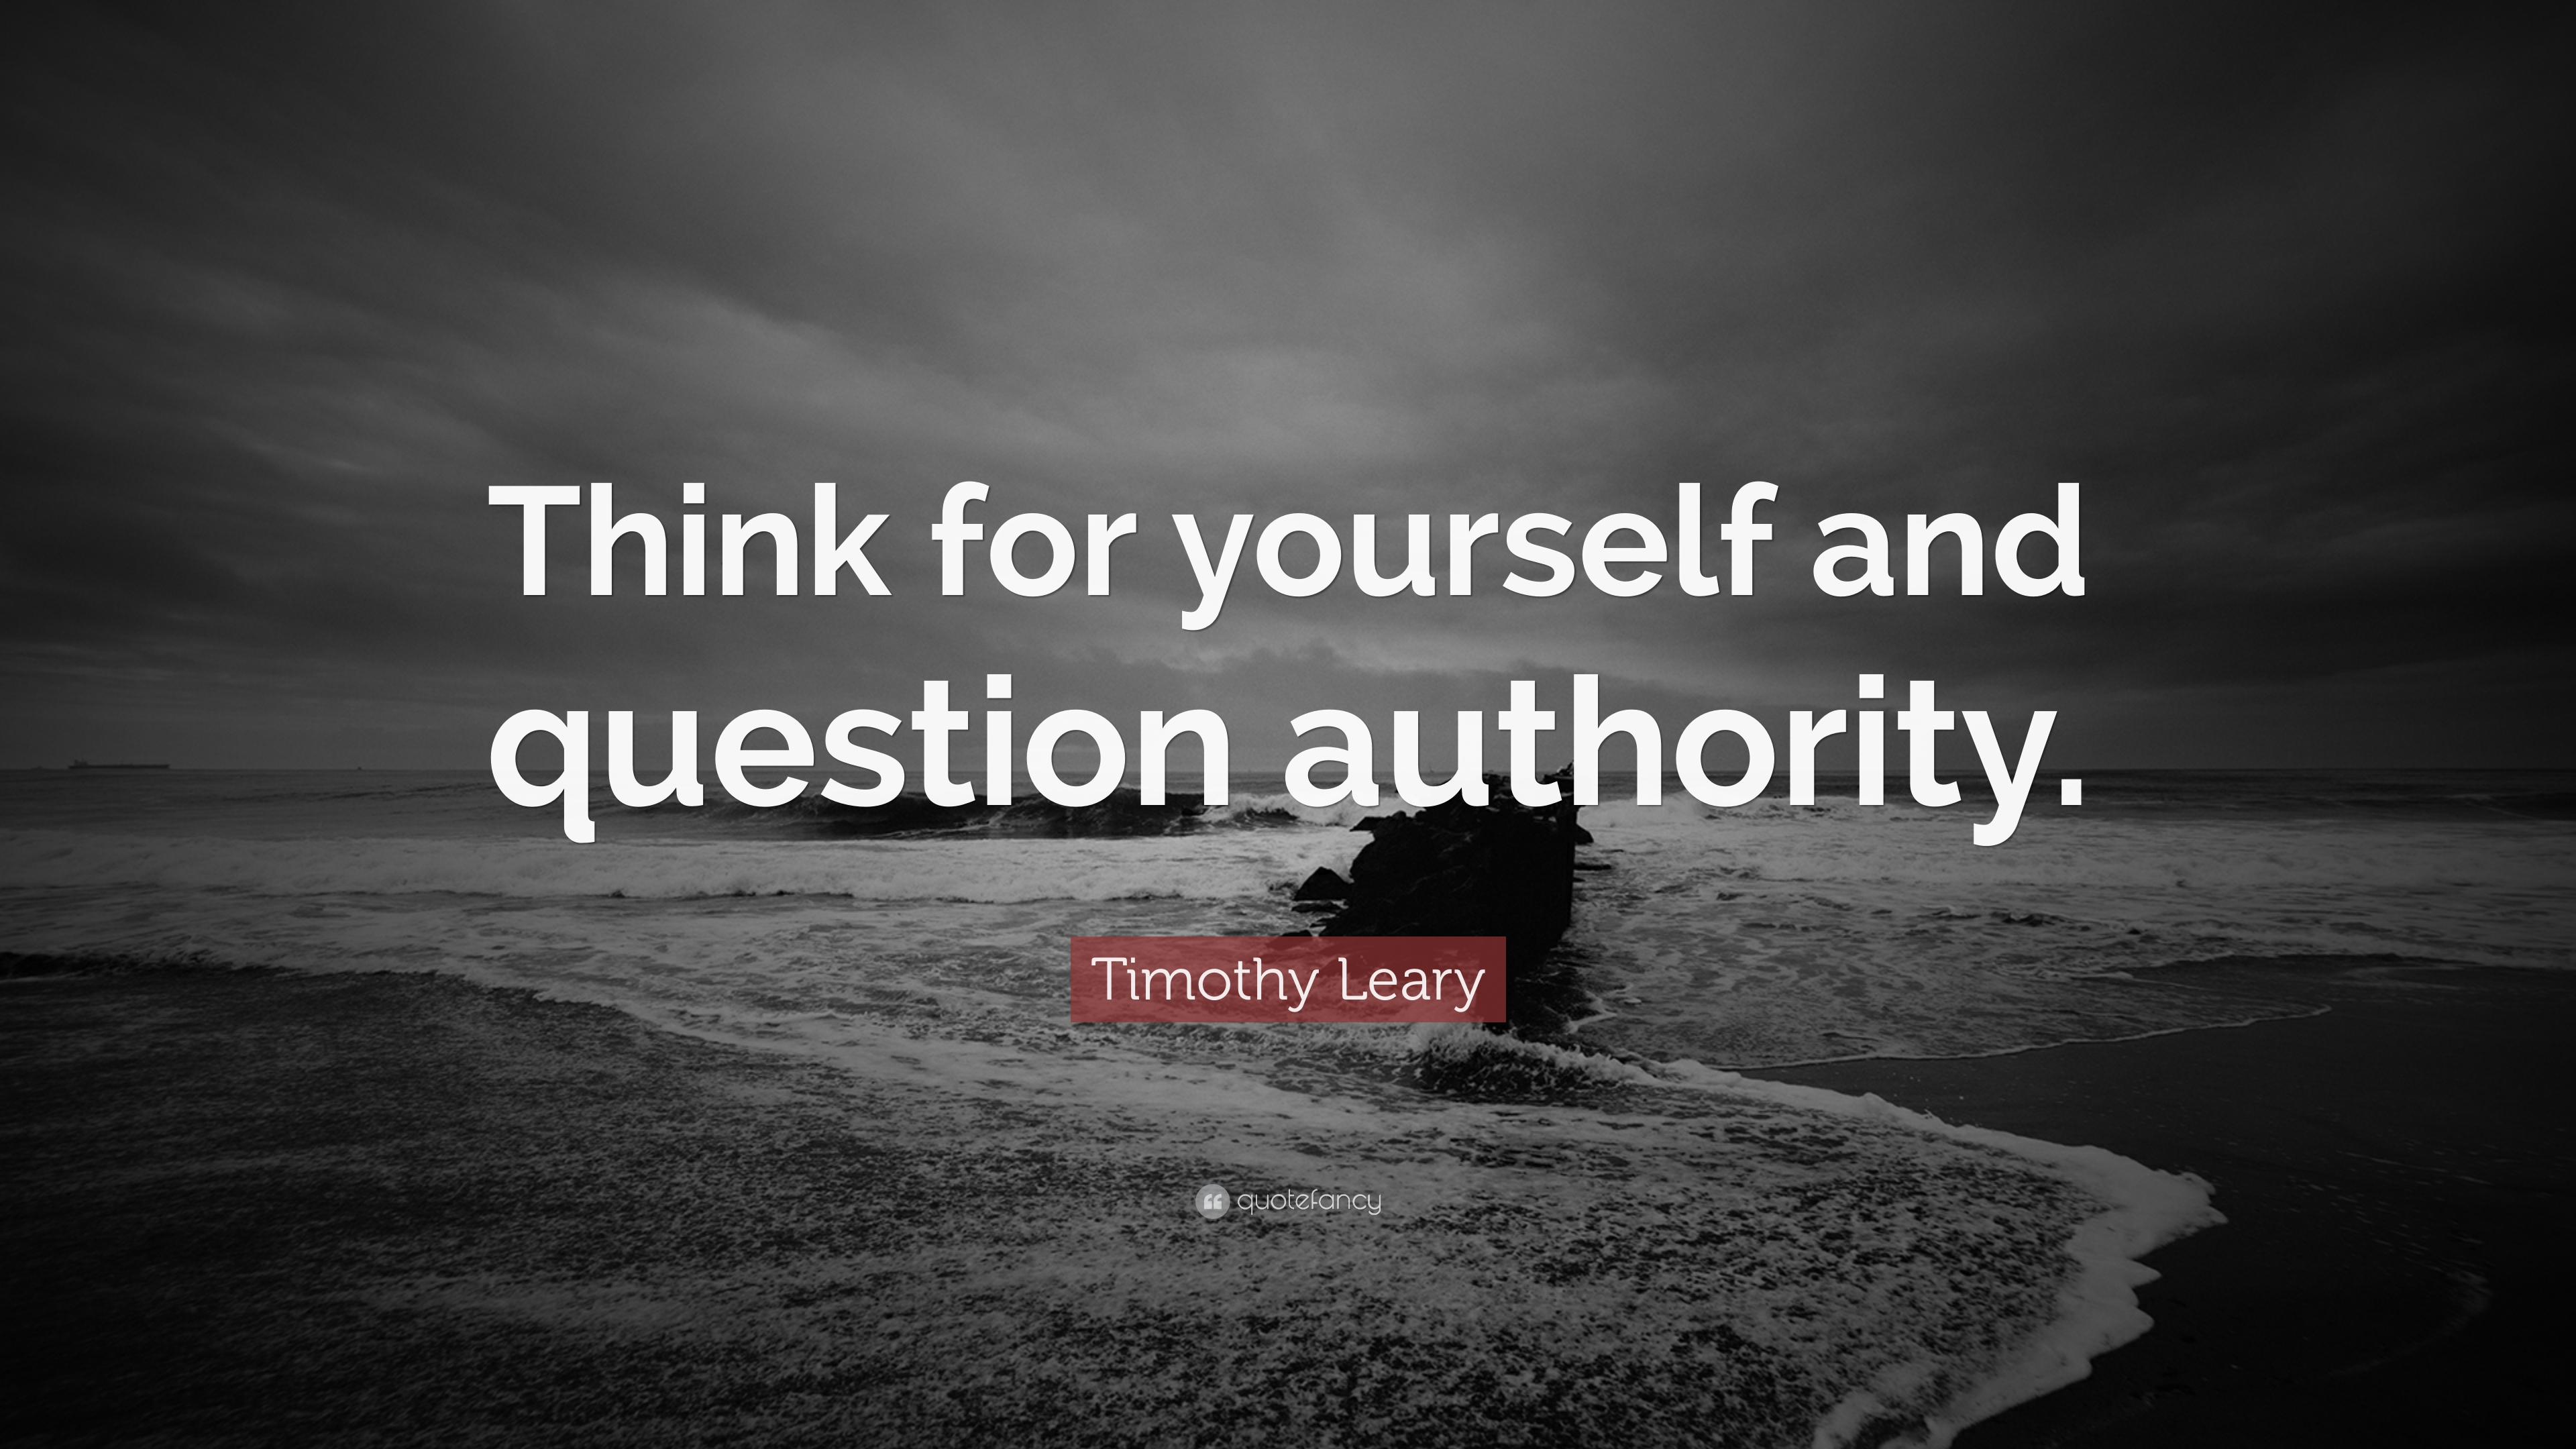 Timothy Leary Quote Think For Yourself And Question Authority